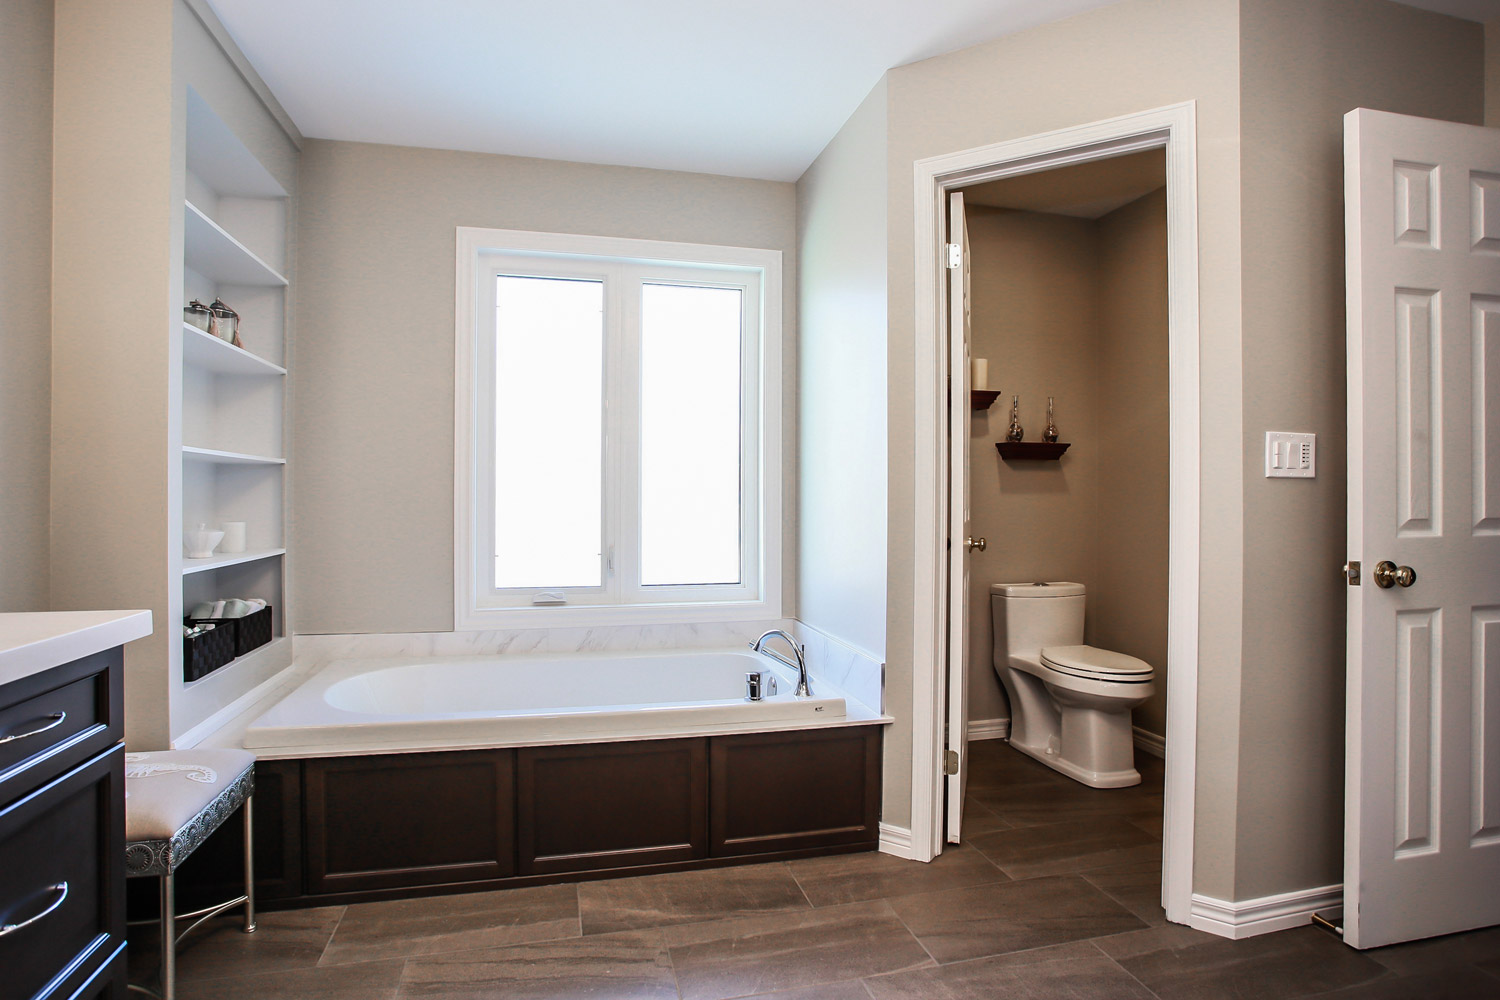 Ensuite renovation with dual vanities, stand up shower, soaker tub, and separate toilet room - Total Living Concepts barrie ontario